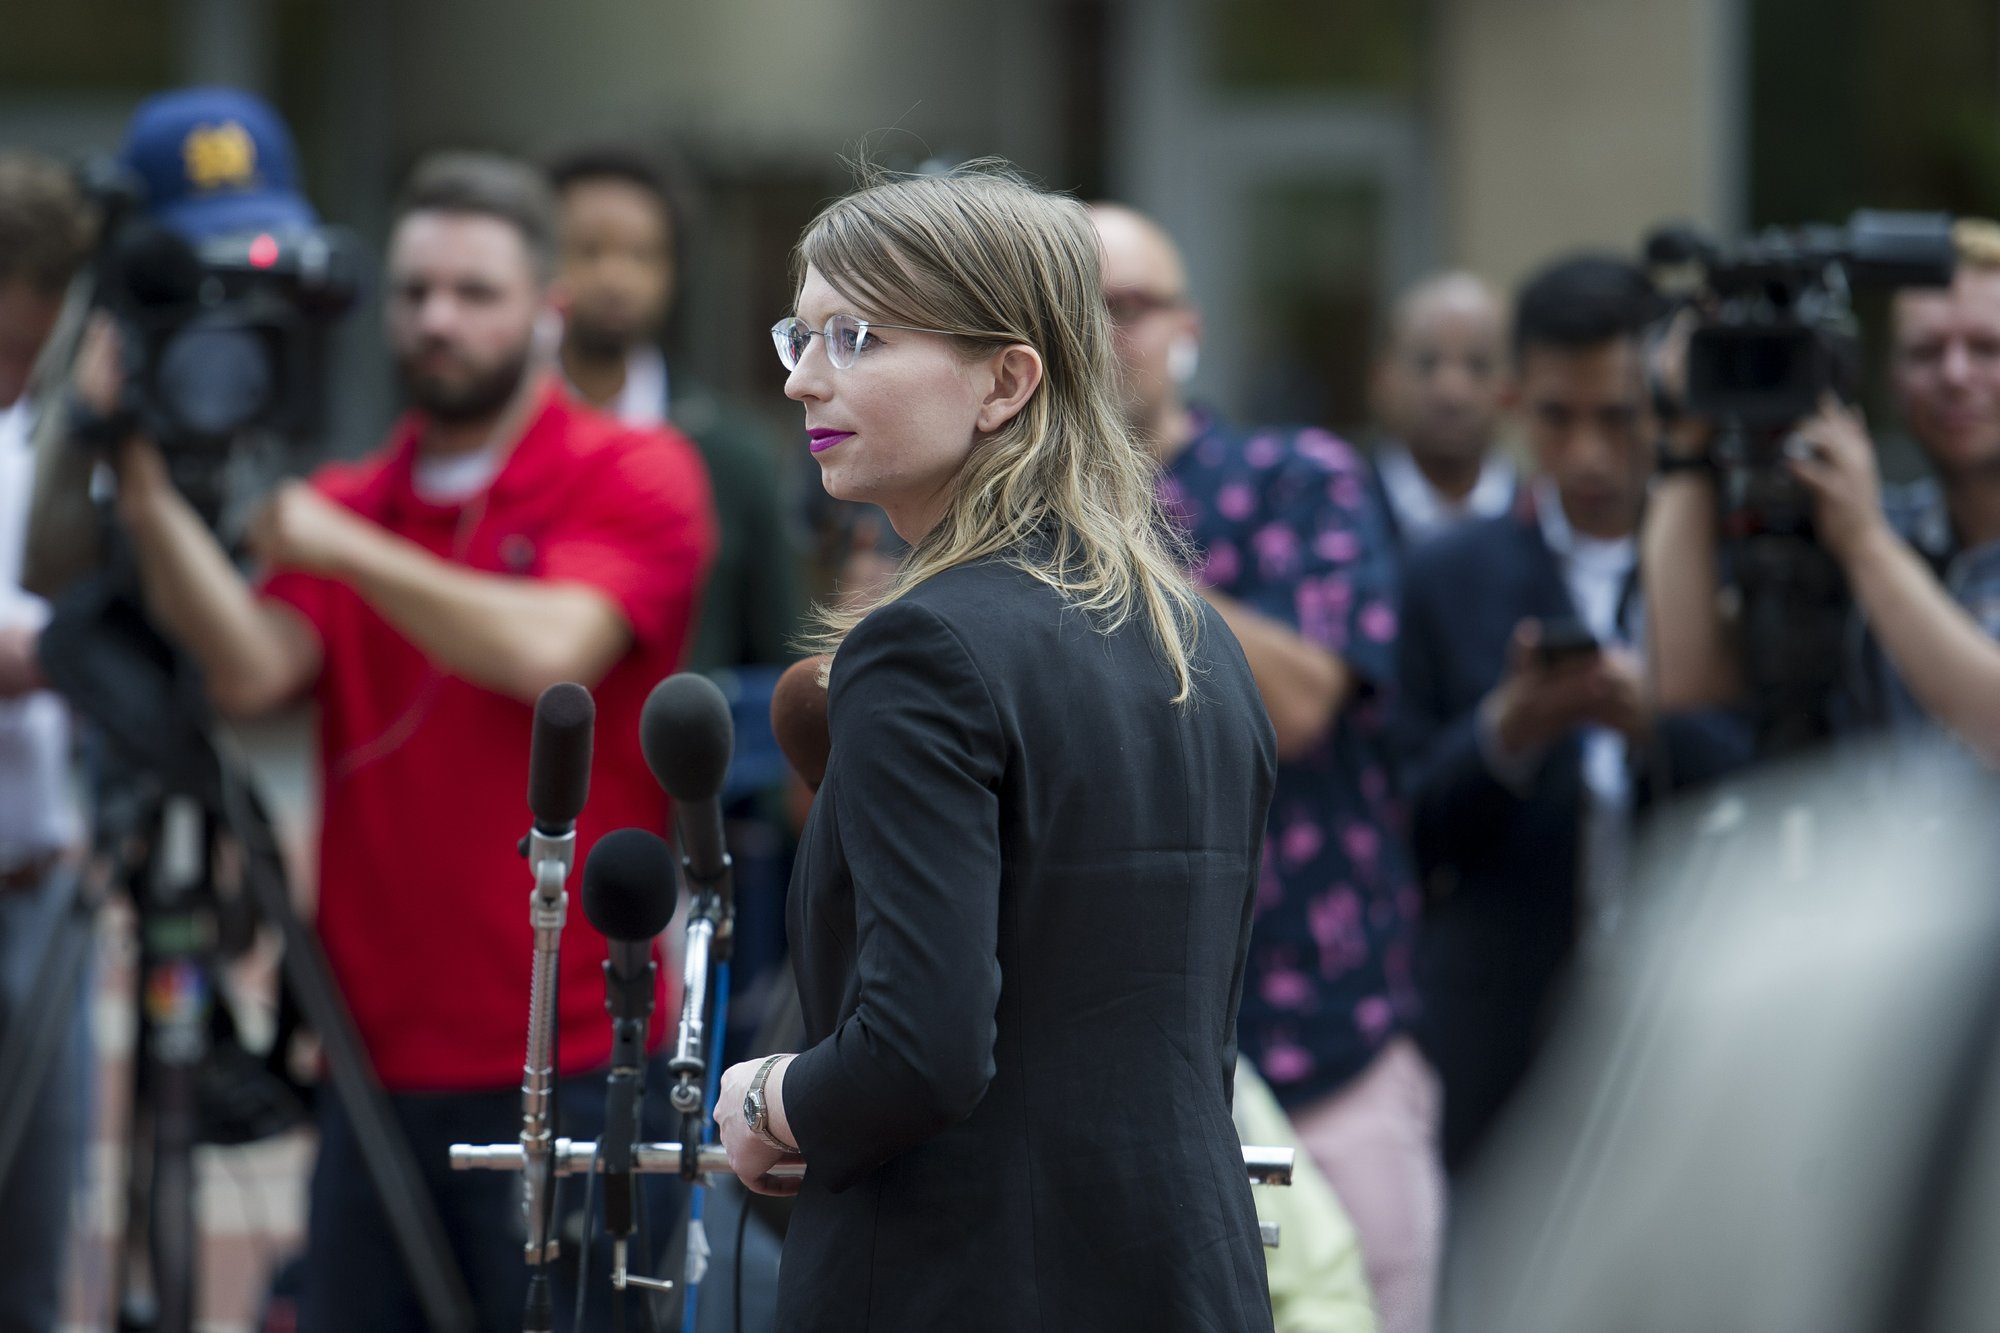 The Latest: Chelsea Manning ordered back to jail